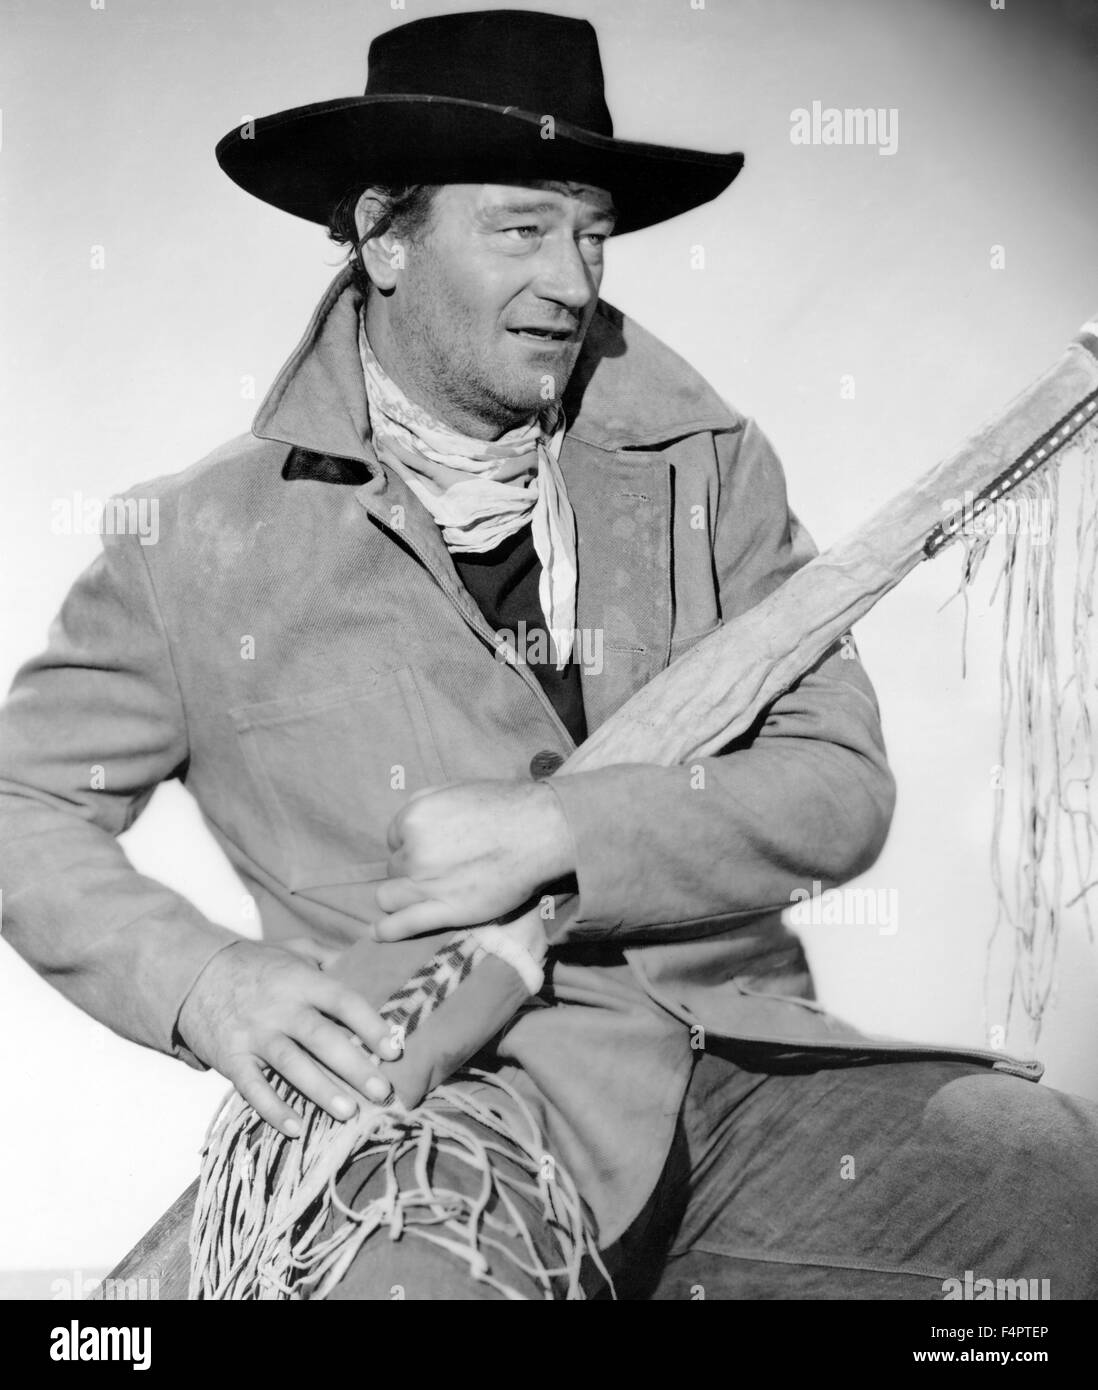 John Wayne / The Searchers / 1956 directed by John Ford [Warner Bros. Pictures] - Stock Image